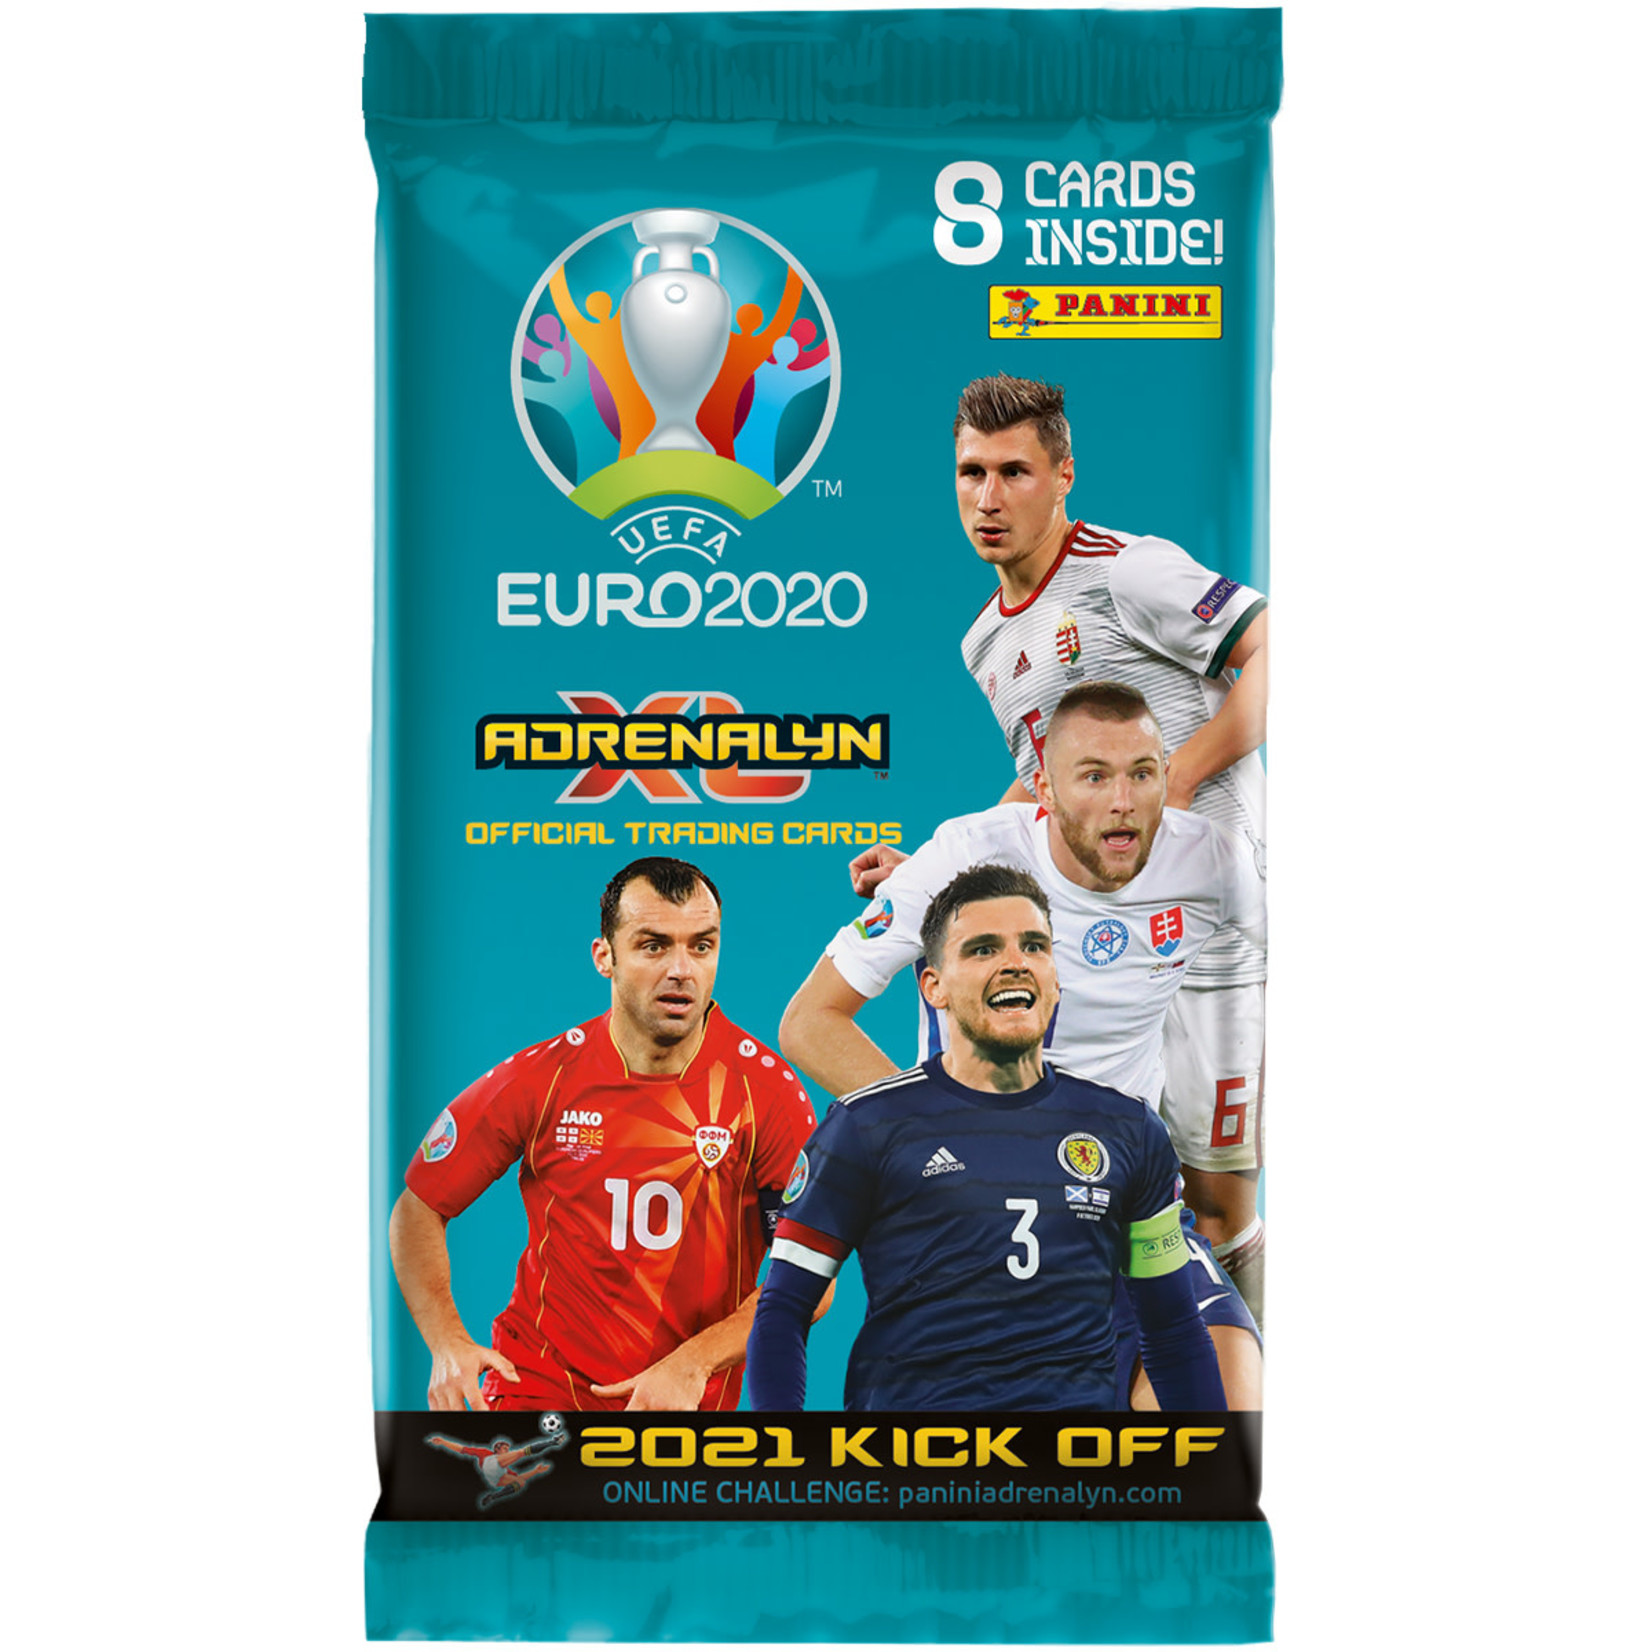 EURO 2020 TRADING CARDS